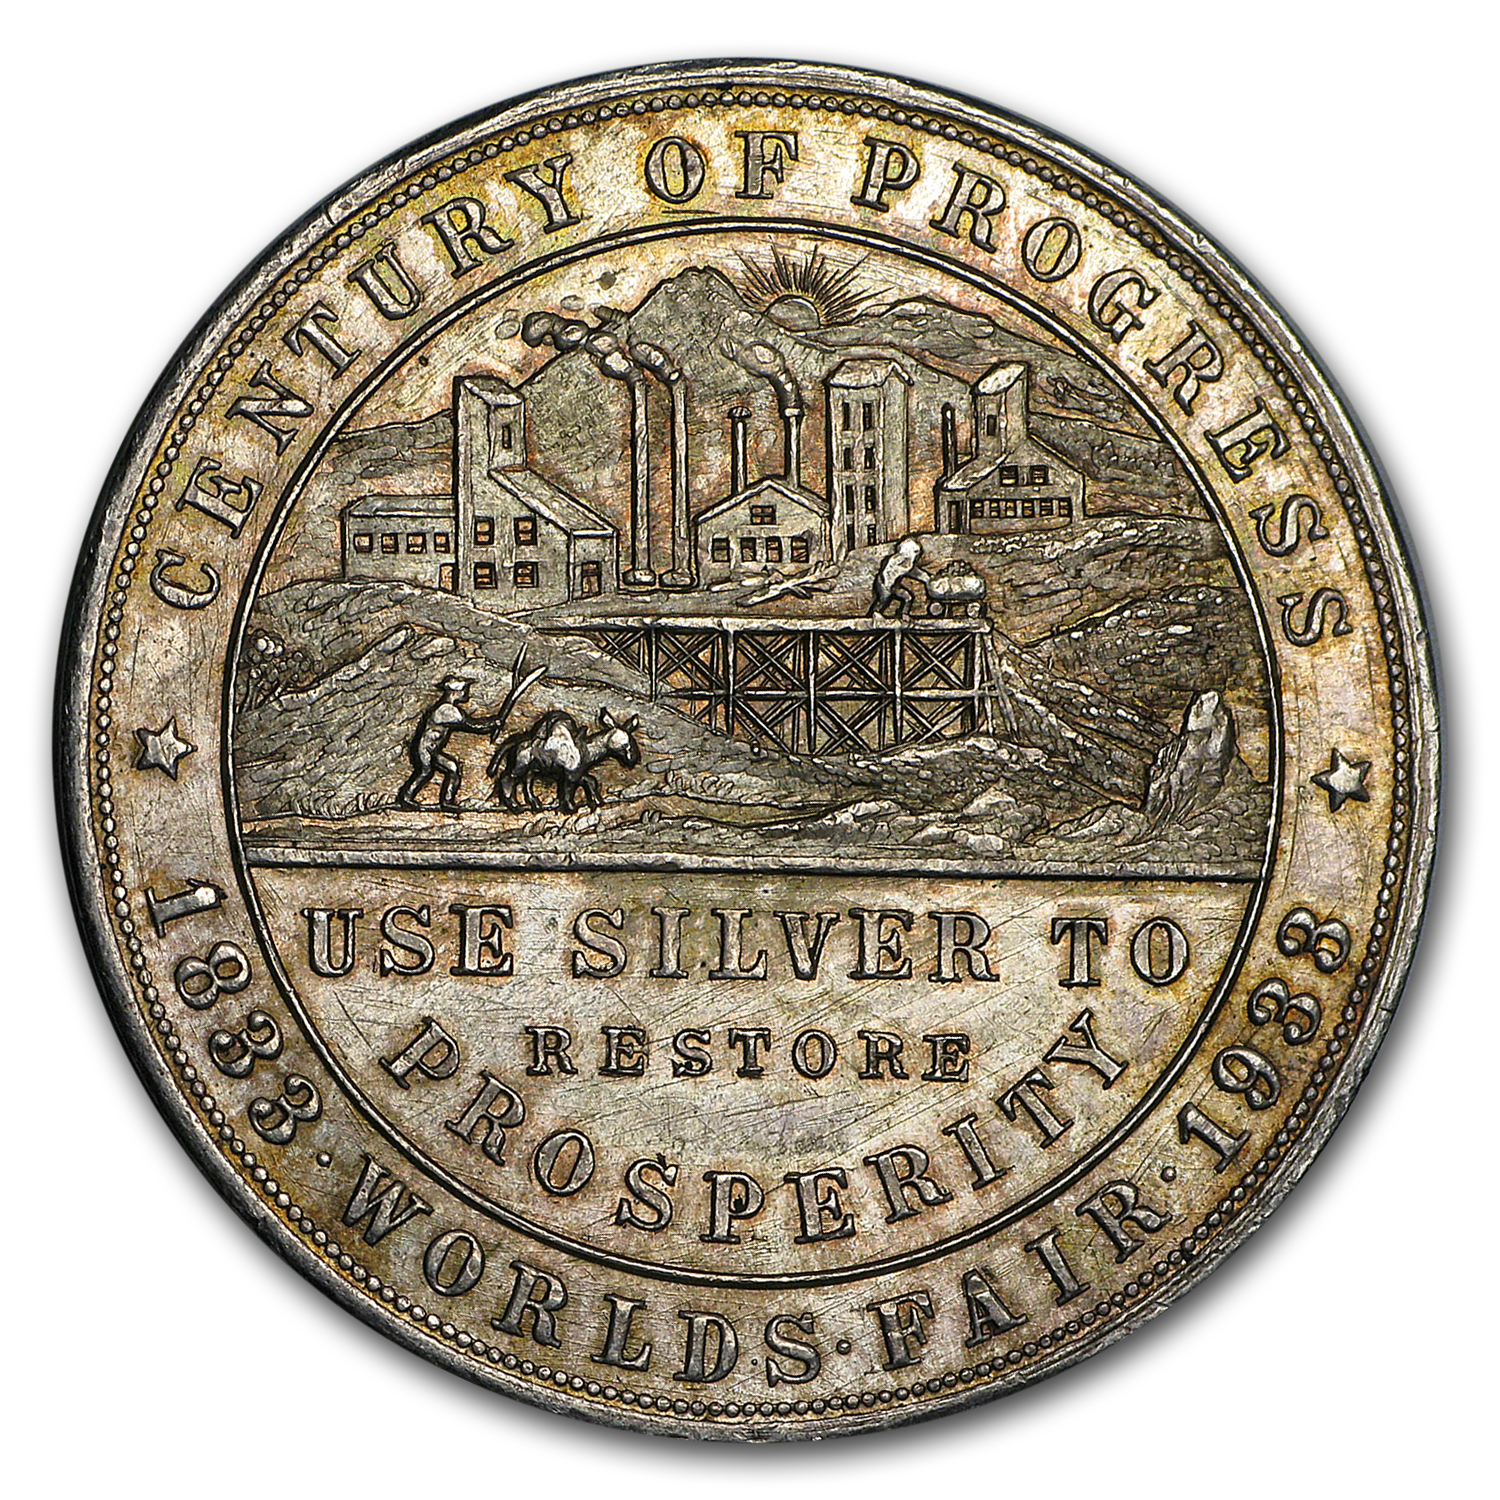 1933 Colorado Century of Progress Silver Dollar HK-870